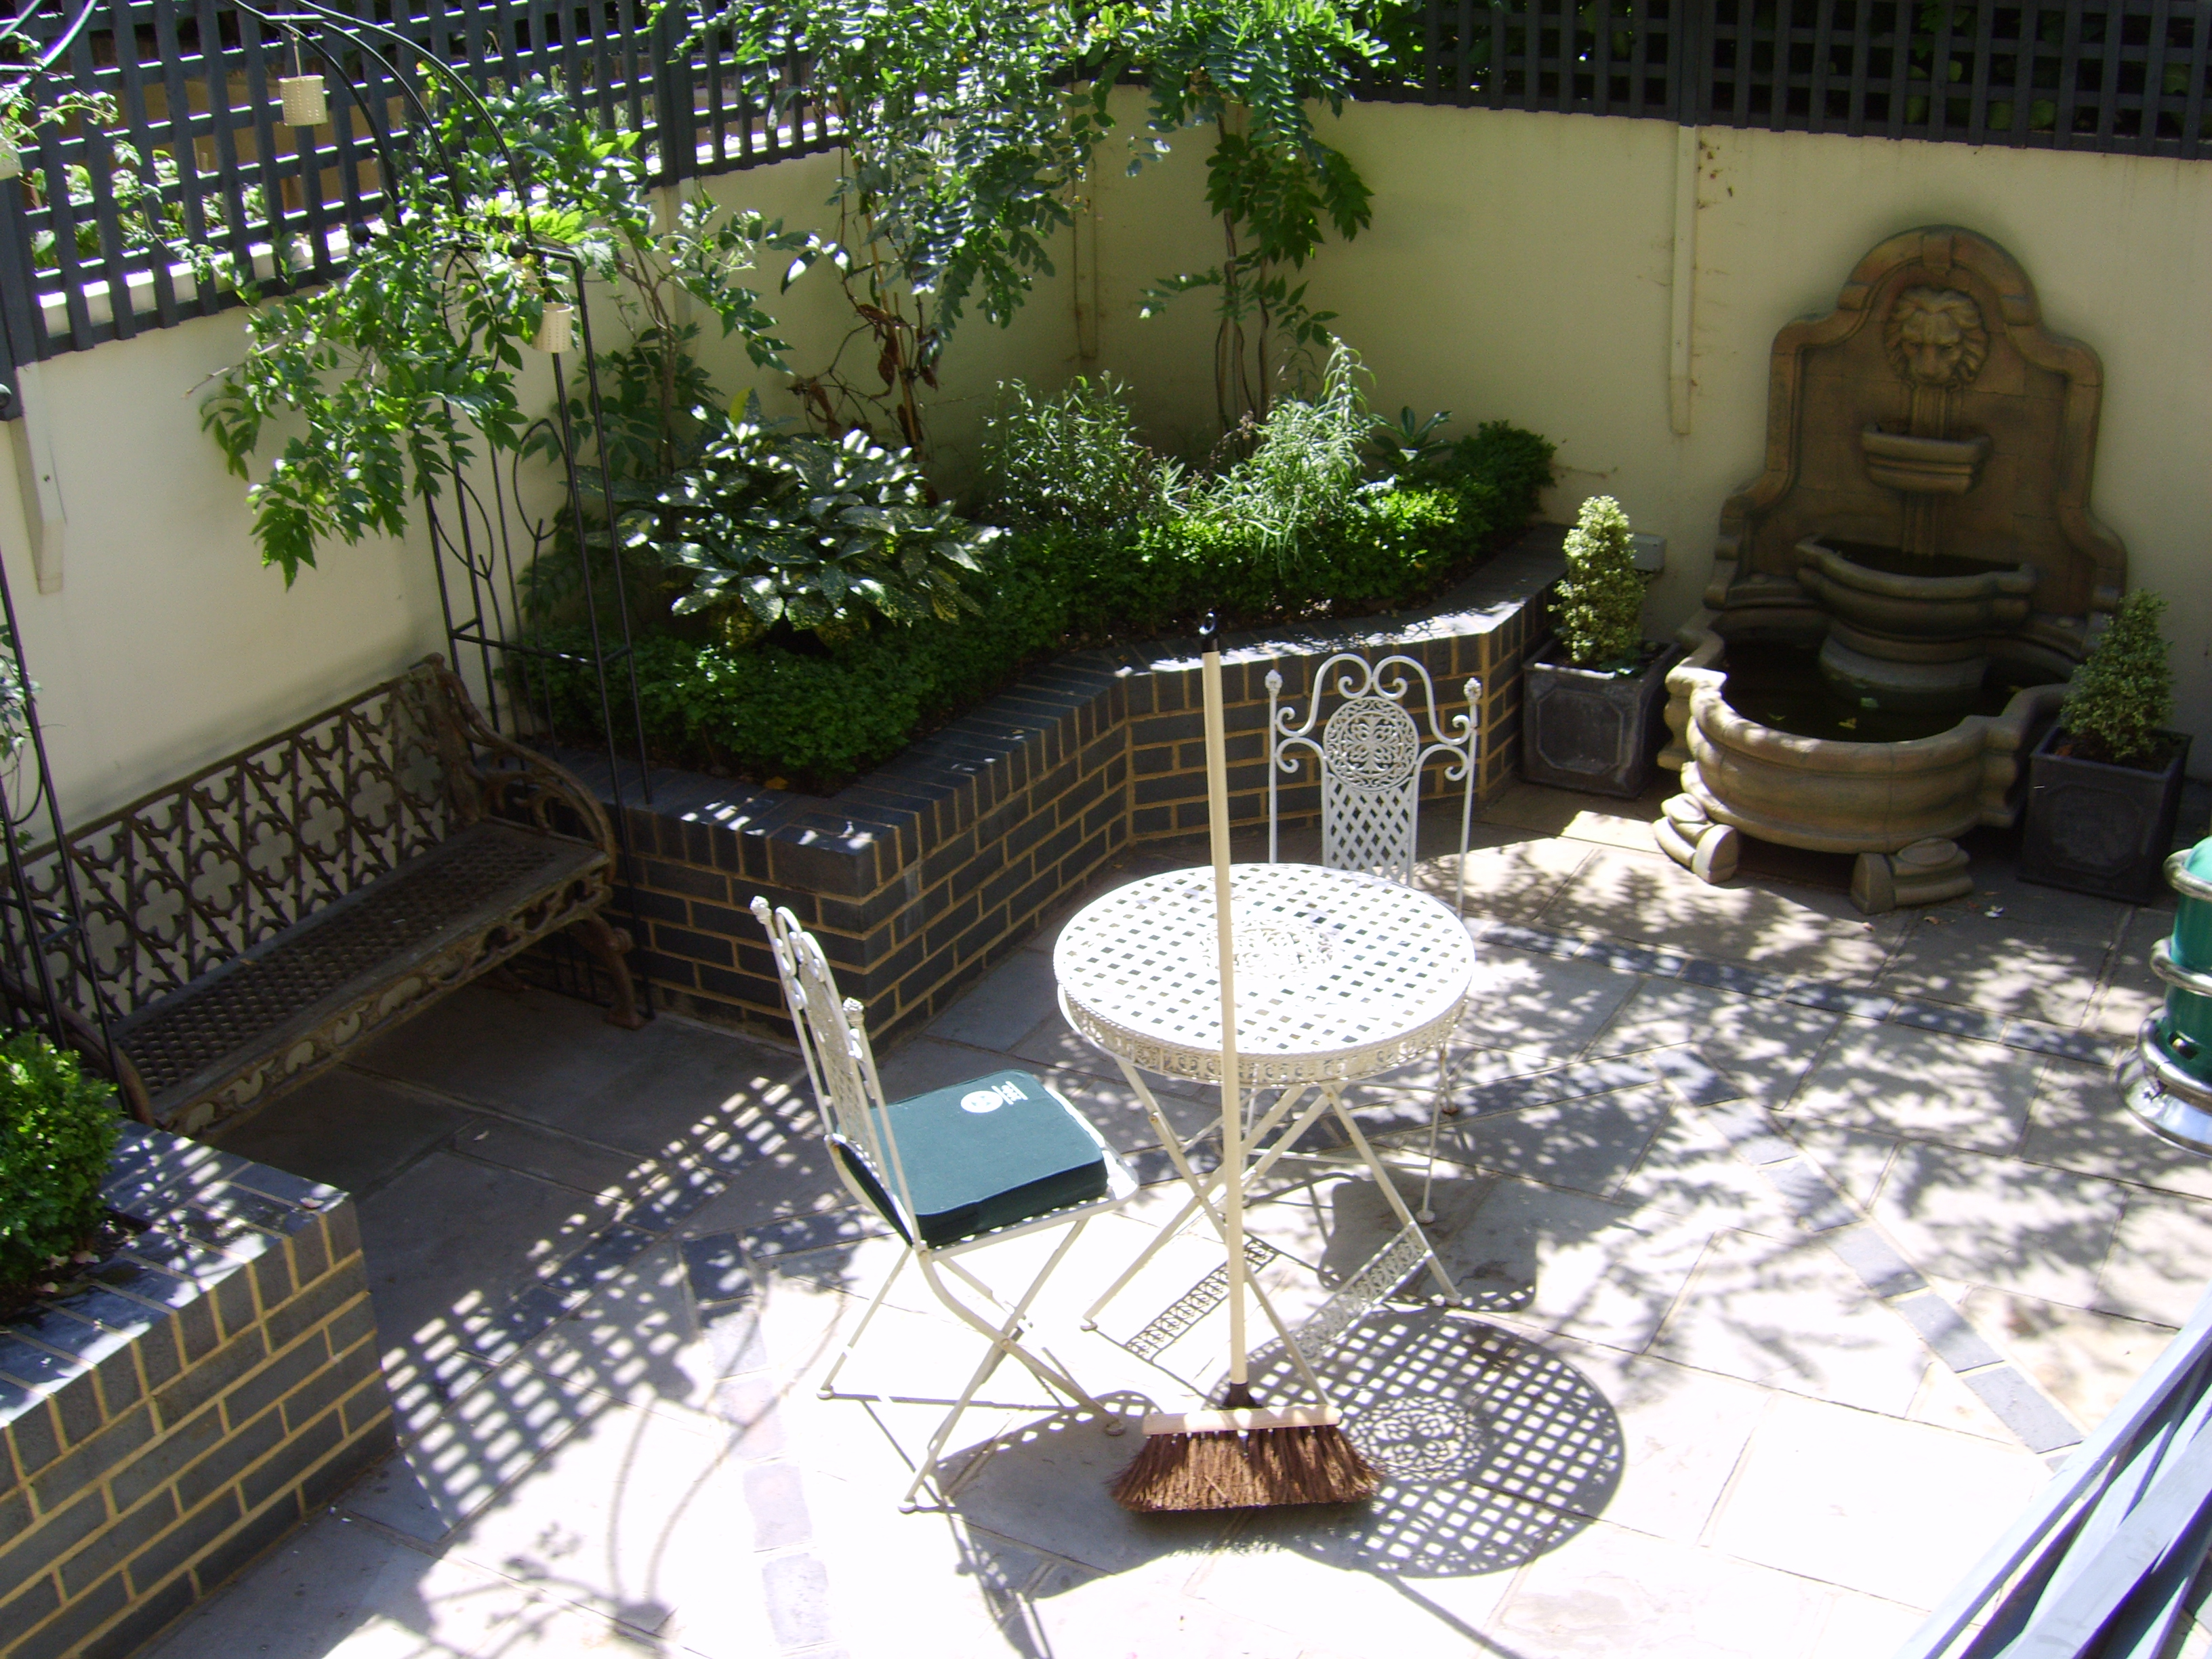 Small Georgian Town House | Floral & Hardy | UK on patio small yard ideas, tuscan raised garden bed ideas, back yard english garden, rock garden ideas, back yard garden with pond, stone front steps design ideas, back yard garden plans, rock patio and walkway design ideas, landscape patio design ideas, low maintenance landscape design ideas, mediterranean house front yard design ideas, narrow pergola design ideas, front yard ground cover ideas, garden path with pavers ideas, houzz landscape design ideas, diy garden path walkway ideas, landscaping ideas, circular driveway landscape design ideas, small landscape design ideas, half covered balcony design ideas,